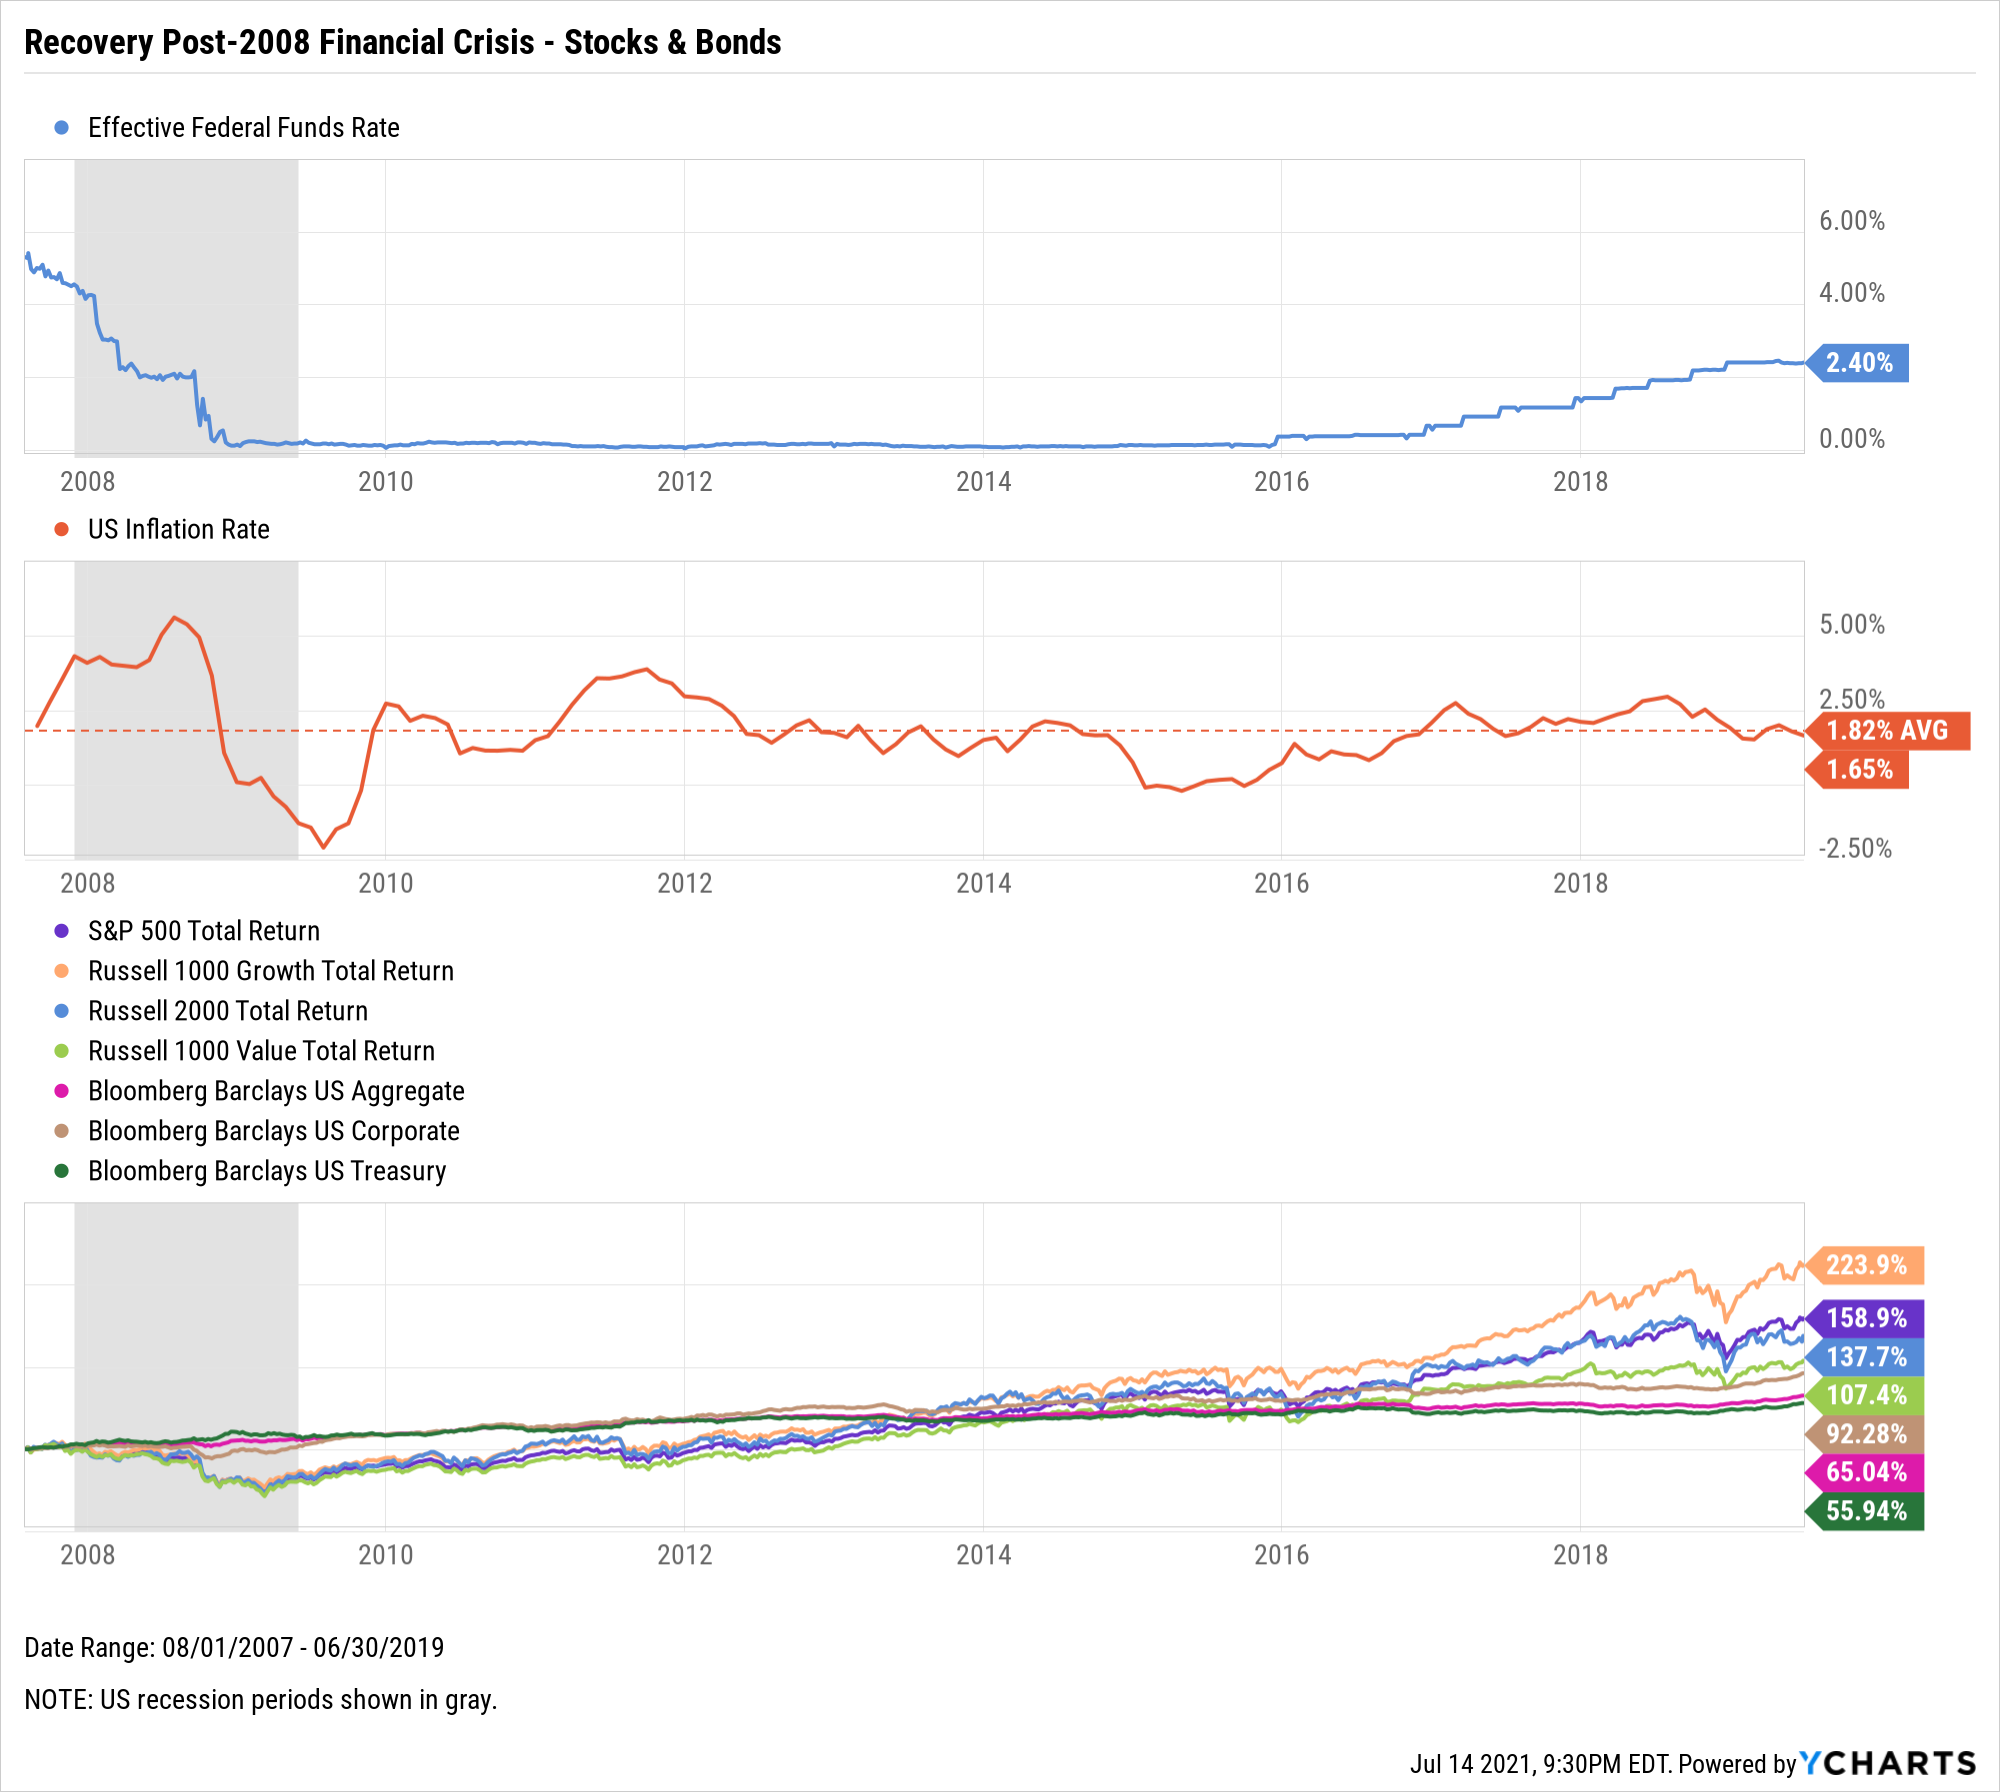 Federal Funds Rate, The Fed, Stocks, Bonds, S&P 500, Russell 2000, The Agg, Barclays US Aggregate, Barclays US Corporate, Barclays US Treasury, Bloomberg, chart